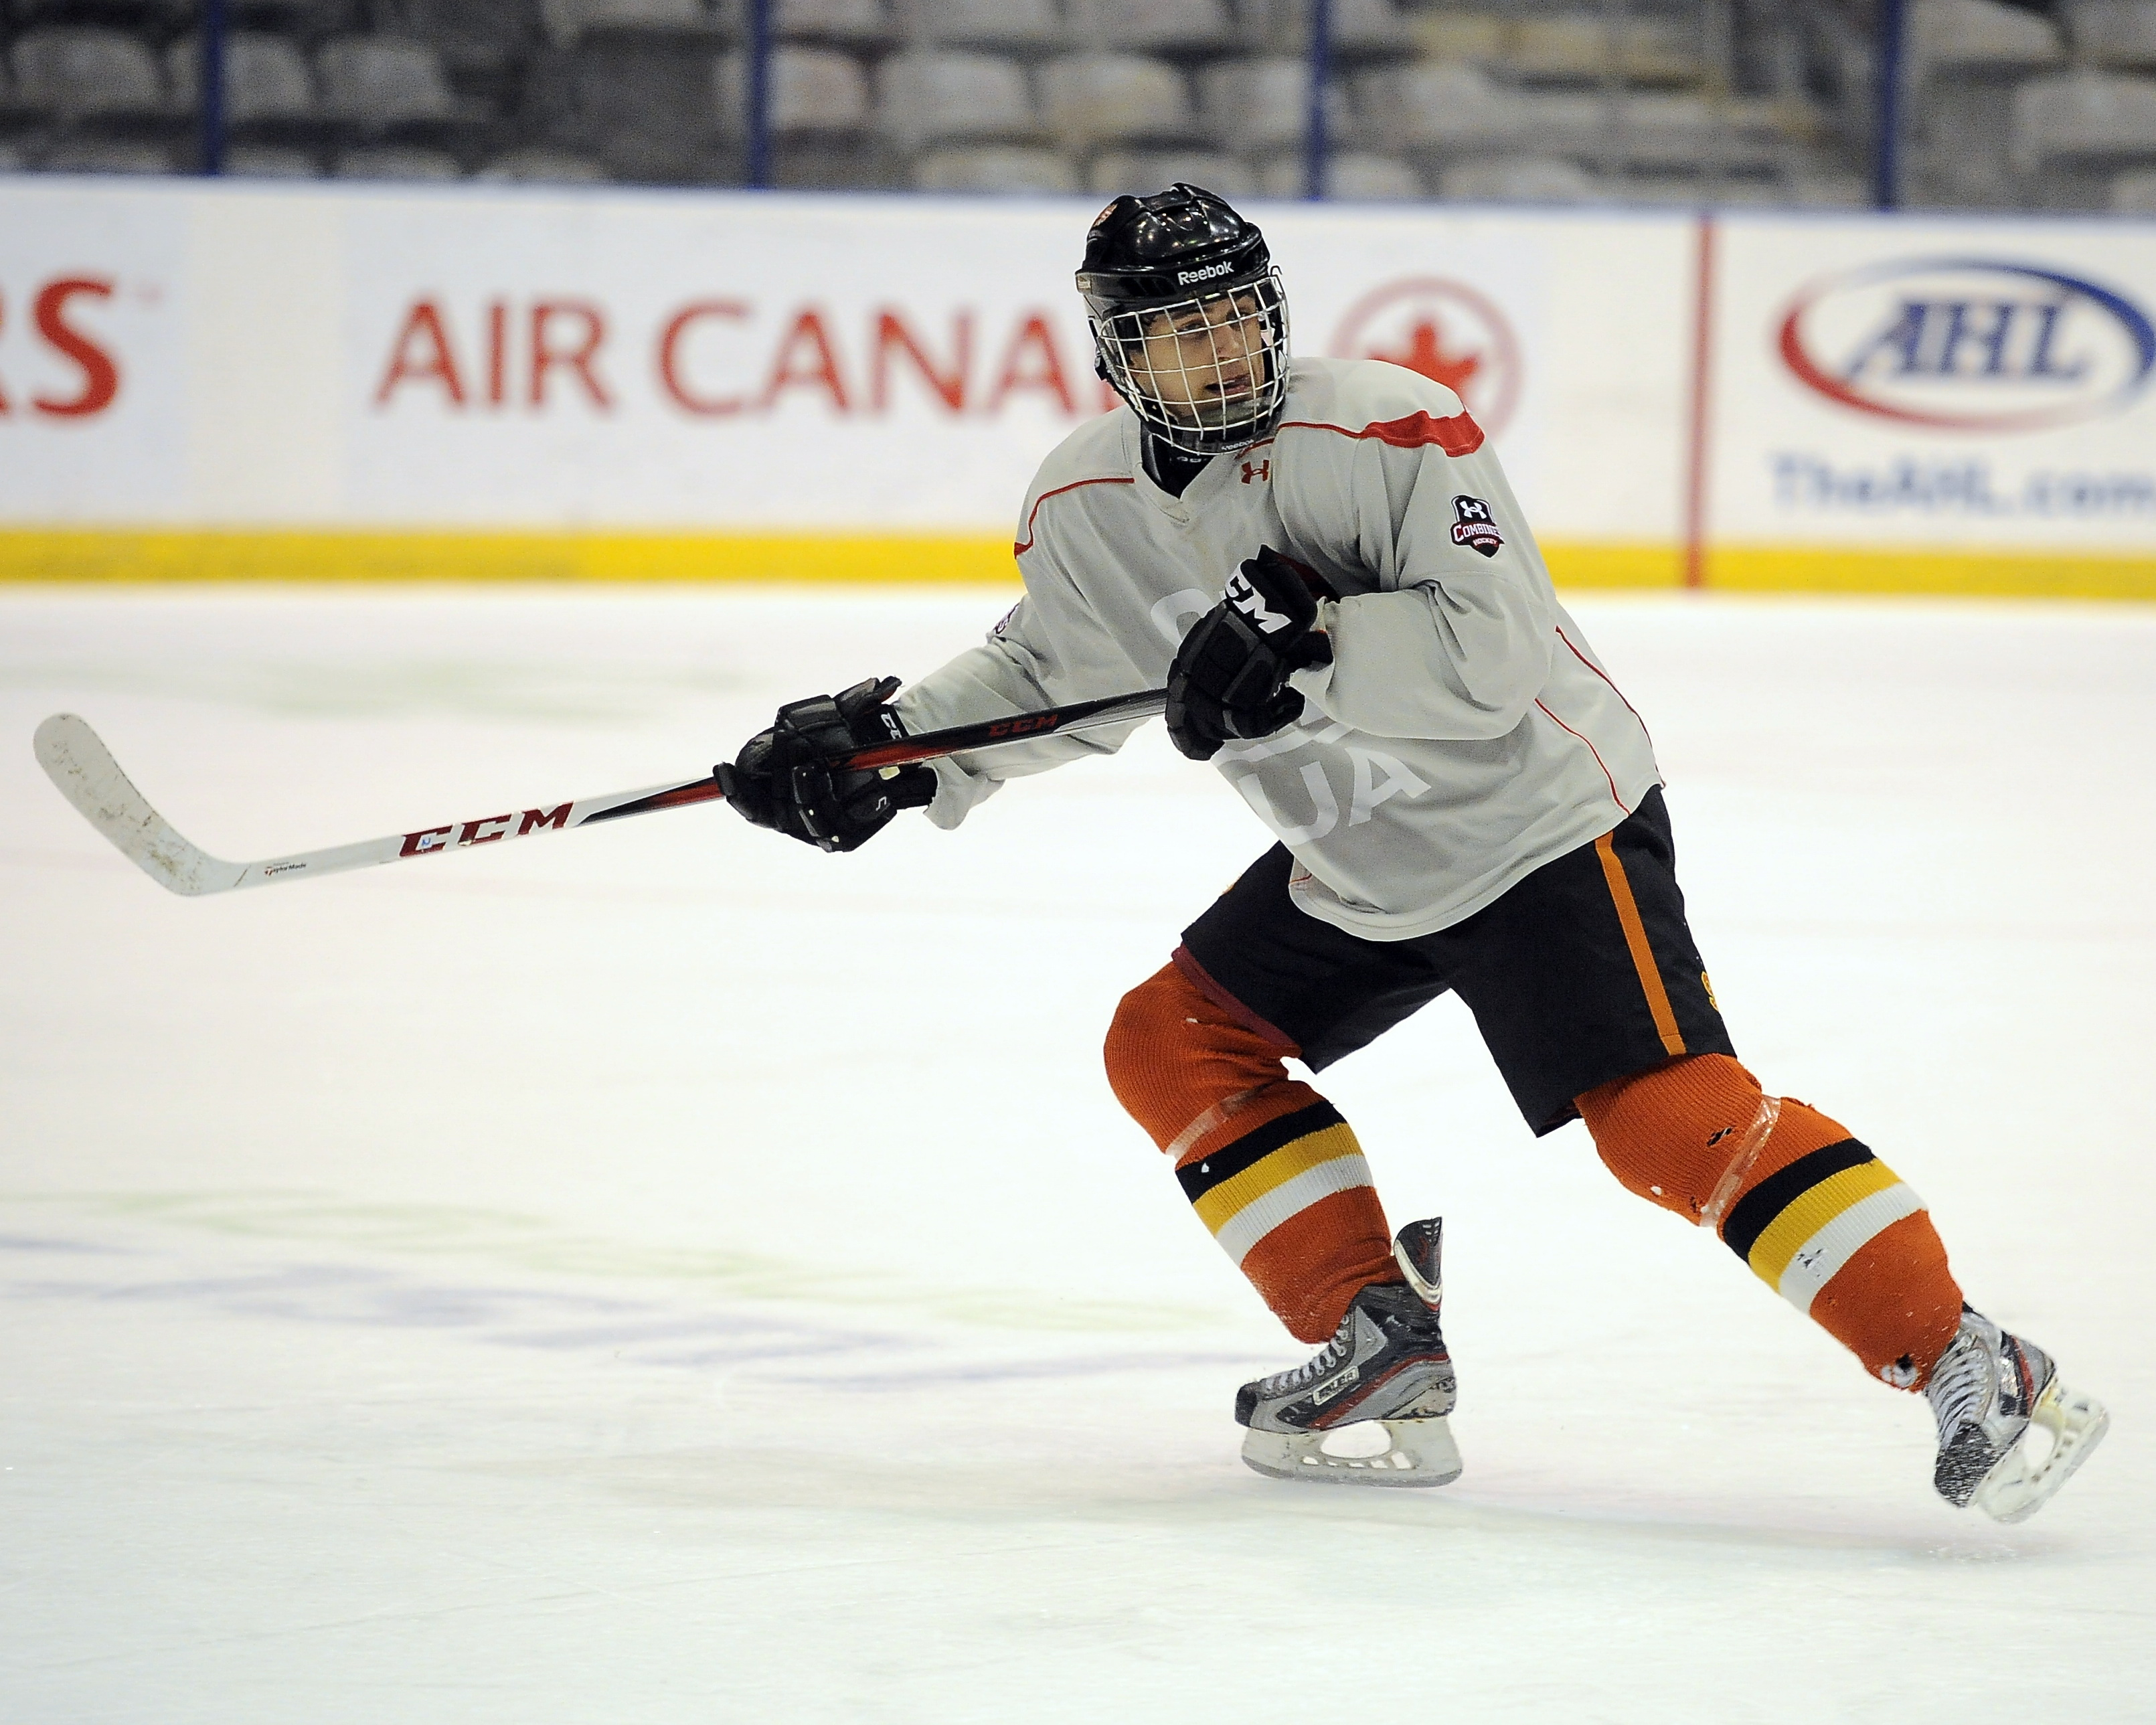 Travis Konecny at the 2013 OHL Prospects Combine. (Photo courtesy of Aaron Bell/OHL Images)